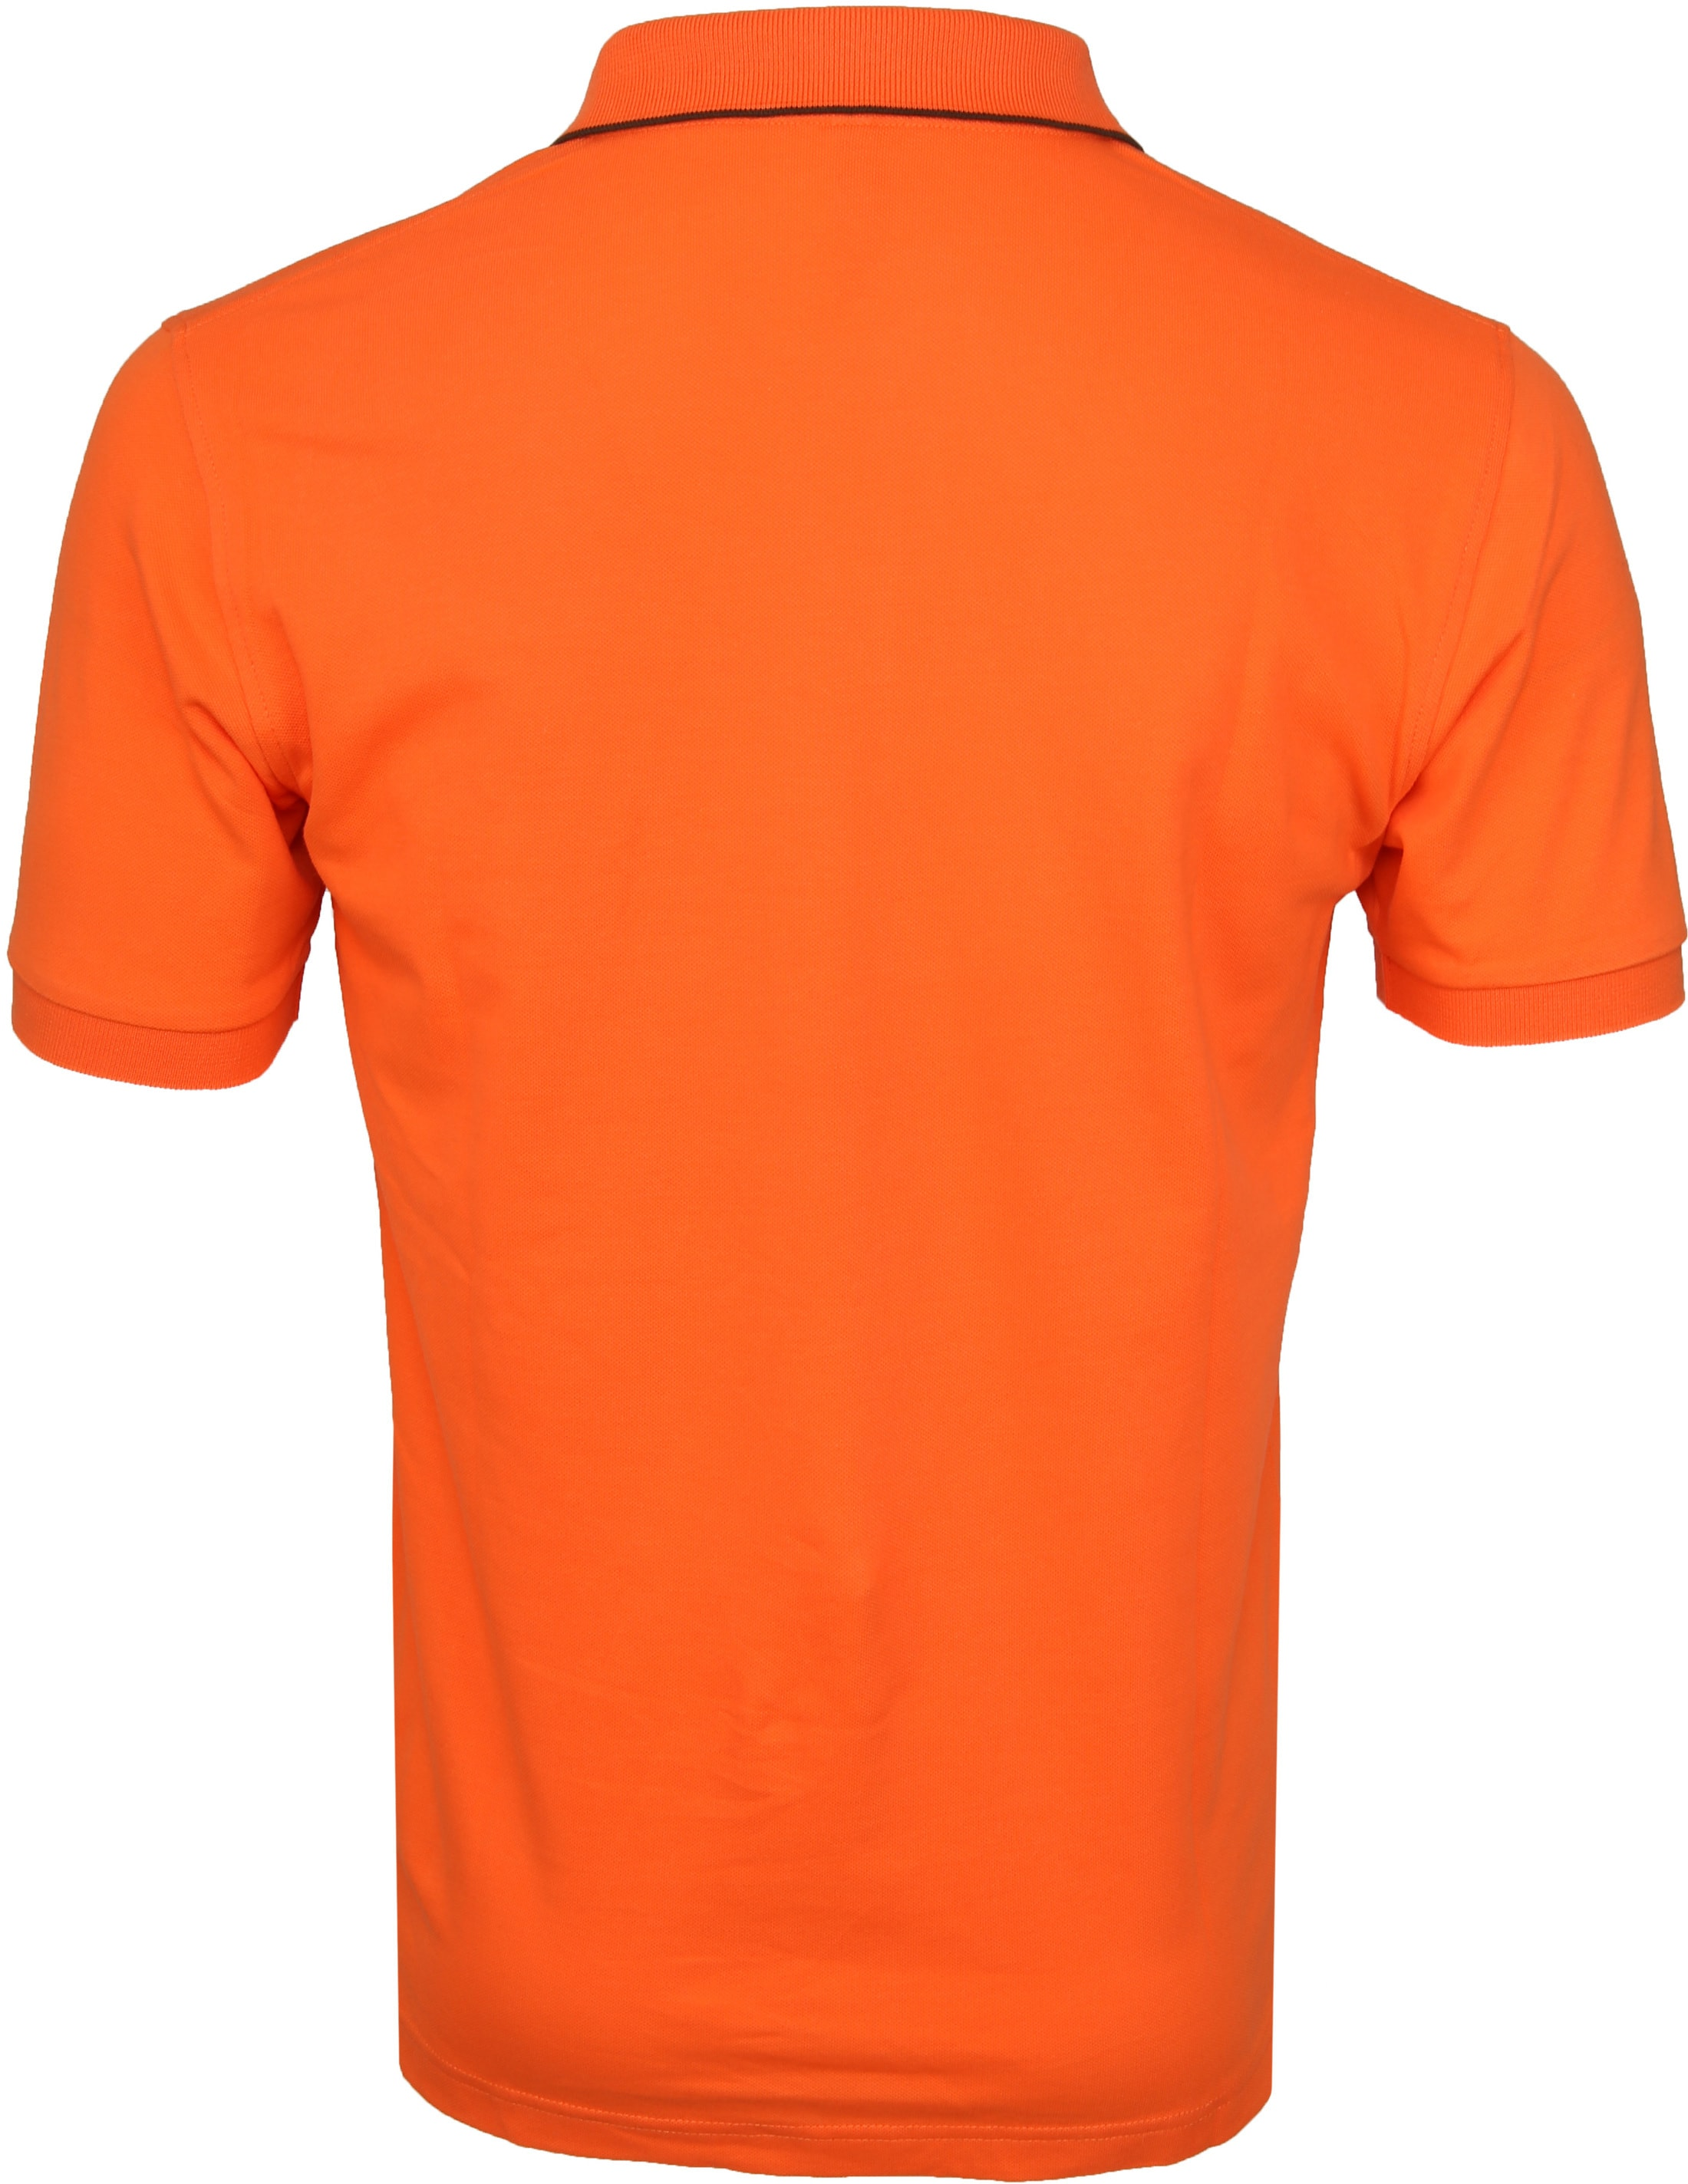 Sun68 Poloshirt Small Stripe Orange SF foto 2